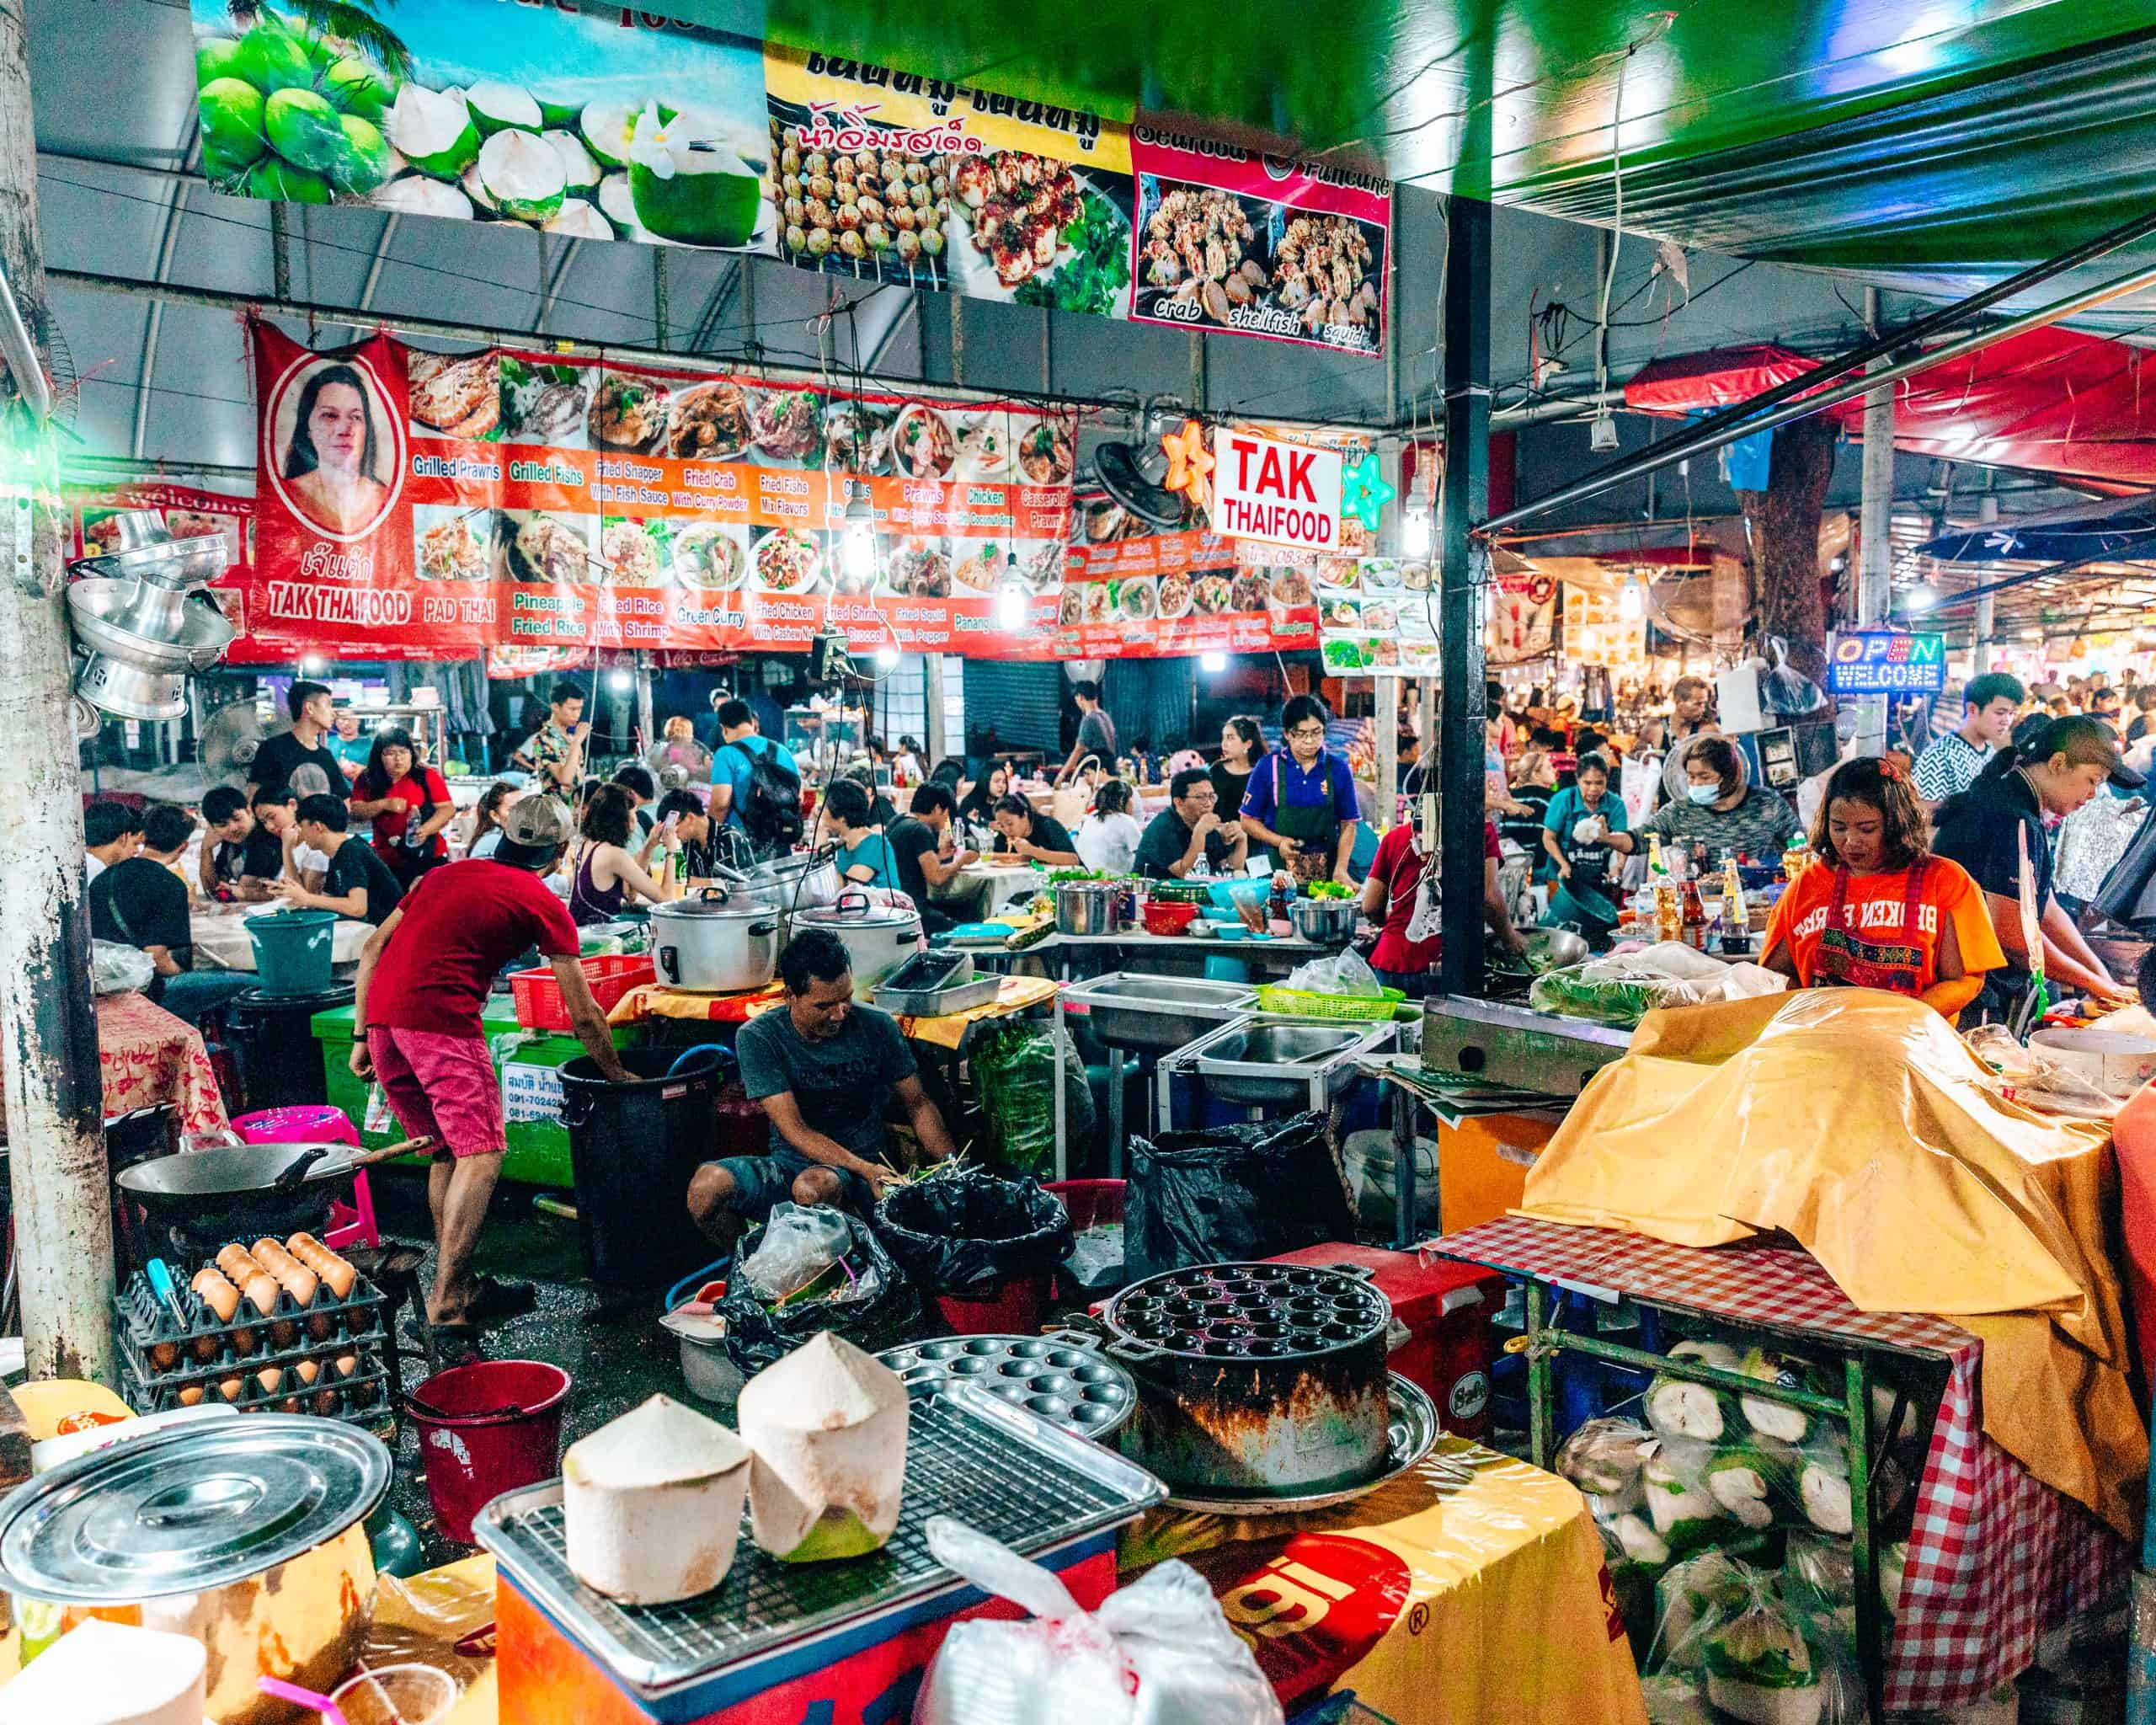 Food court at Chatachuk Weekend Market - The Next Trip